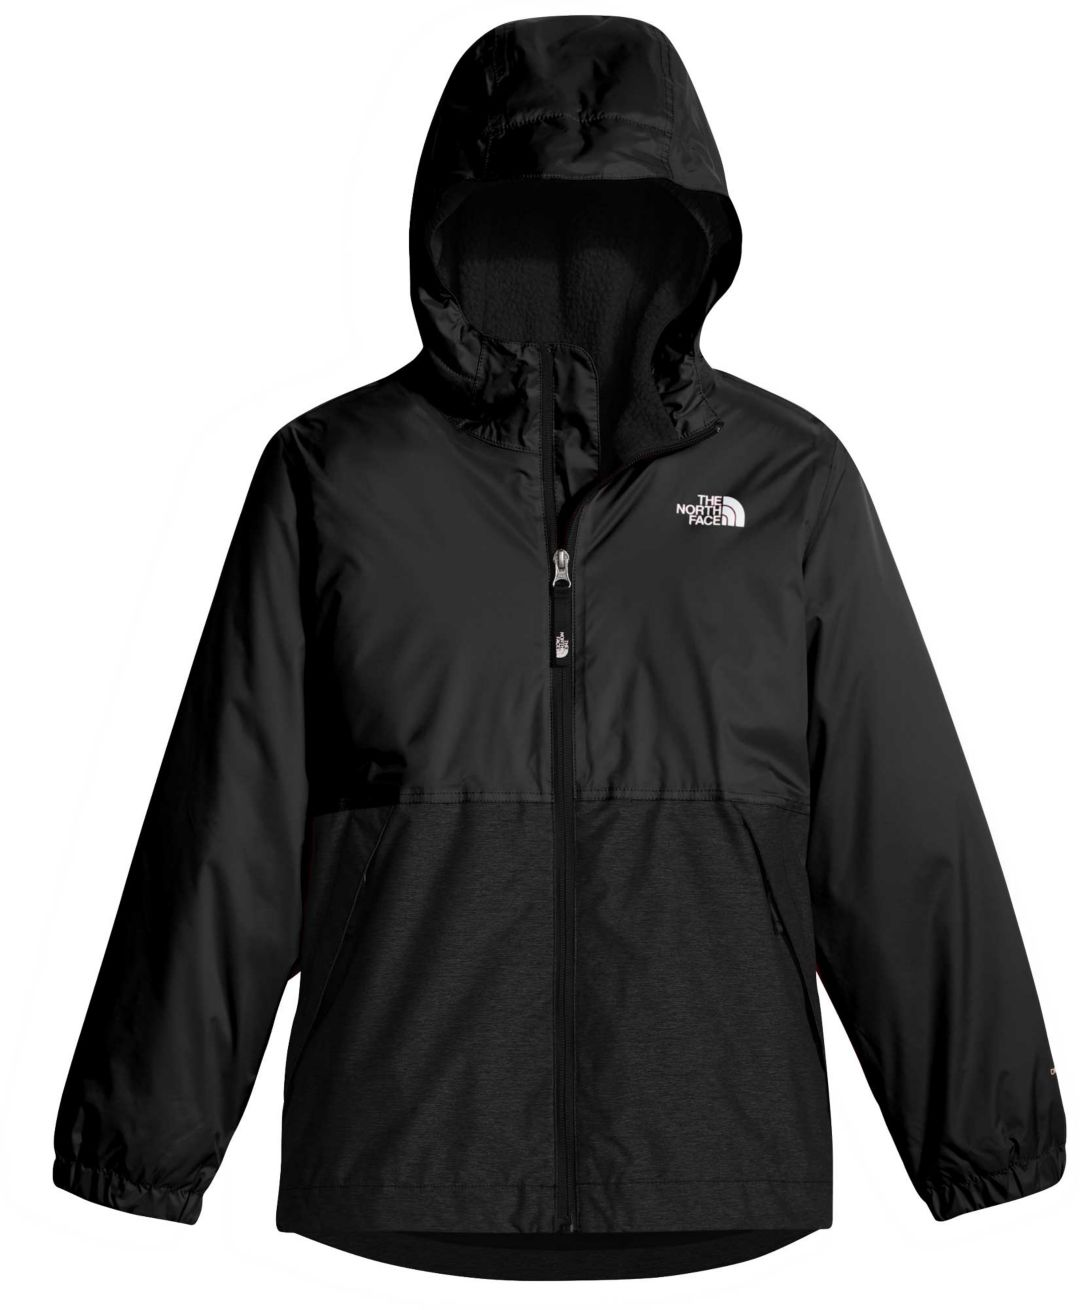 54a3c5cad The North Face Boys' Warm Storm Rain Jacket